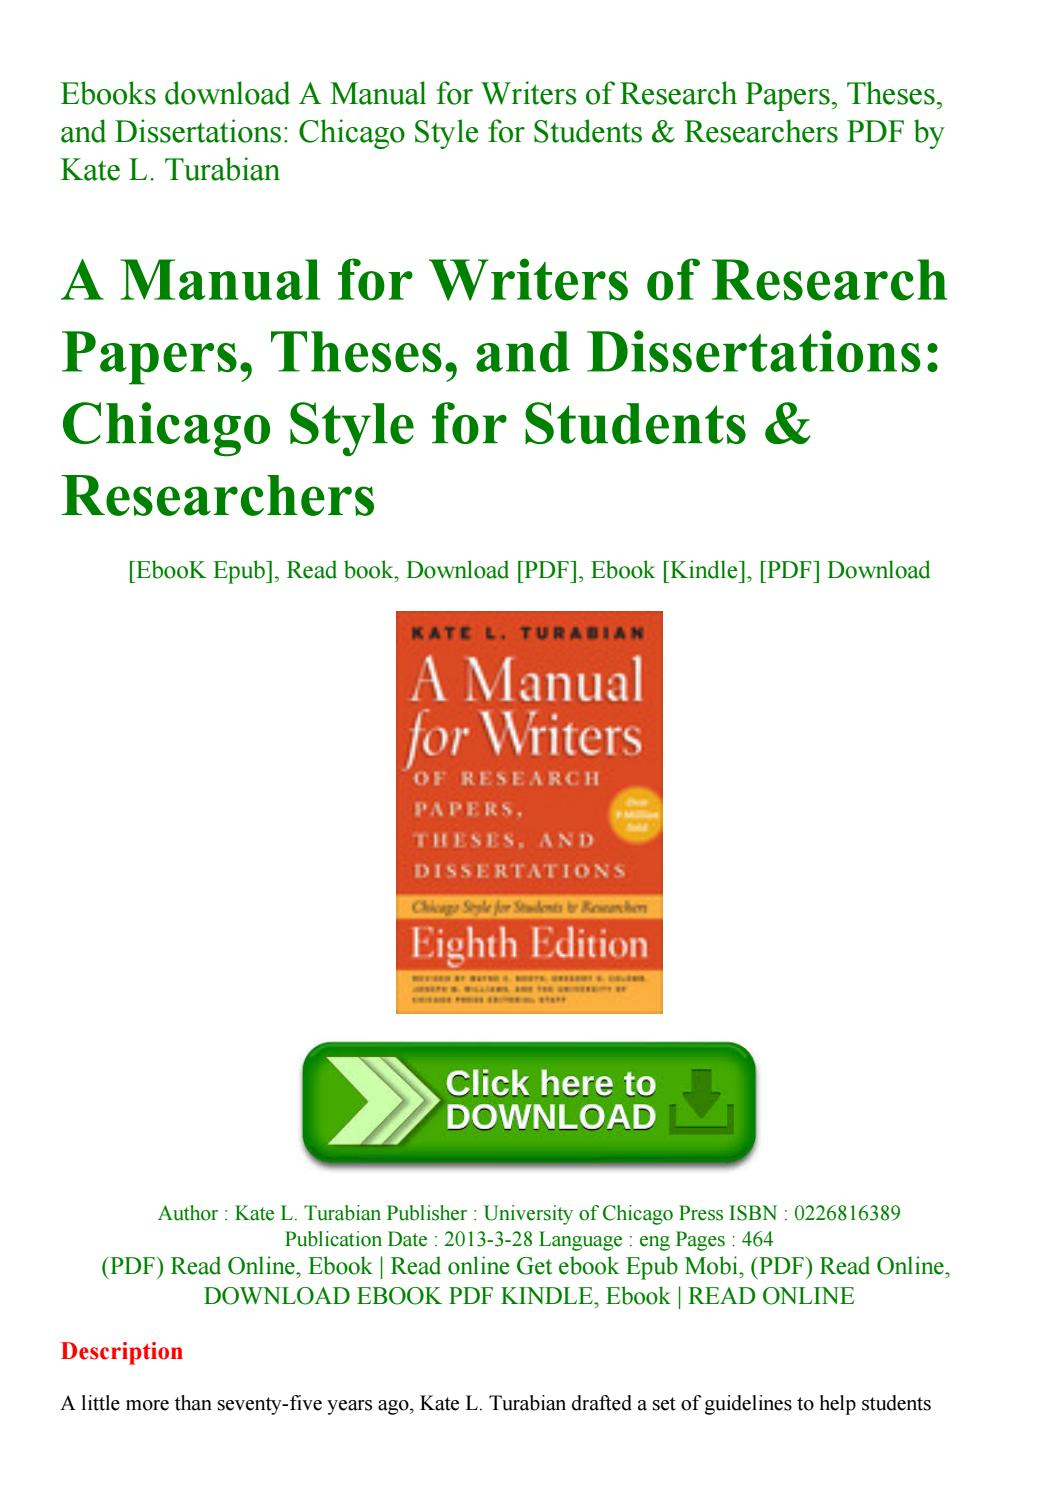 018 Page 1 Research Paper Manual For Writers Of Papers Theses And Sensational A Dissertations Eighth Edition Pdf 9th 8th Full